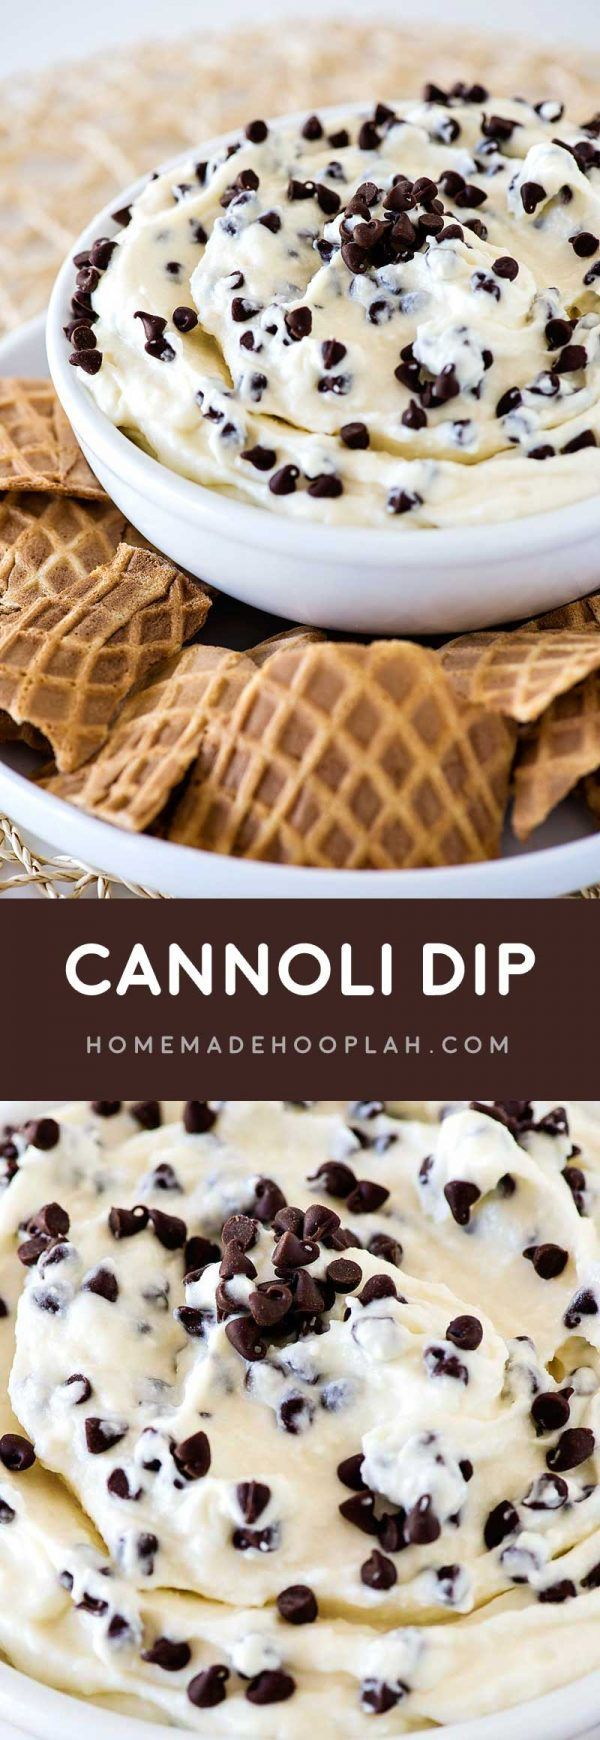 Garlic Dipping Oil is the easiest appetizer to mak…  Garlic Dipping Oil is the easiest appetizer to make! With Italian herbs and lots of garlicky goodness, it's perfect for dipping your favorite crusty bread. The post Garlic Dipping Oil is the easiest appetizer to mak… appeared first on Woman Casual.